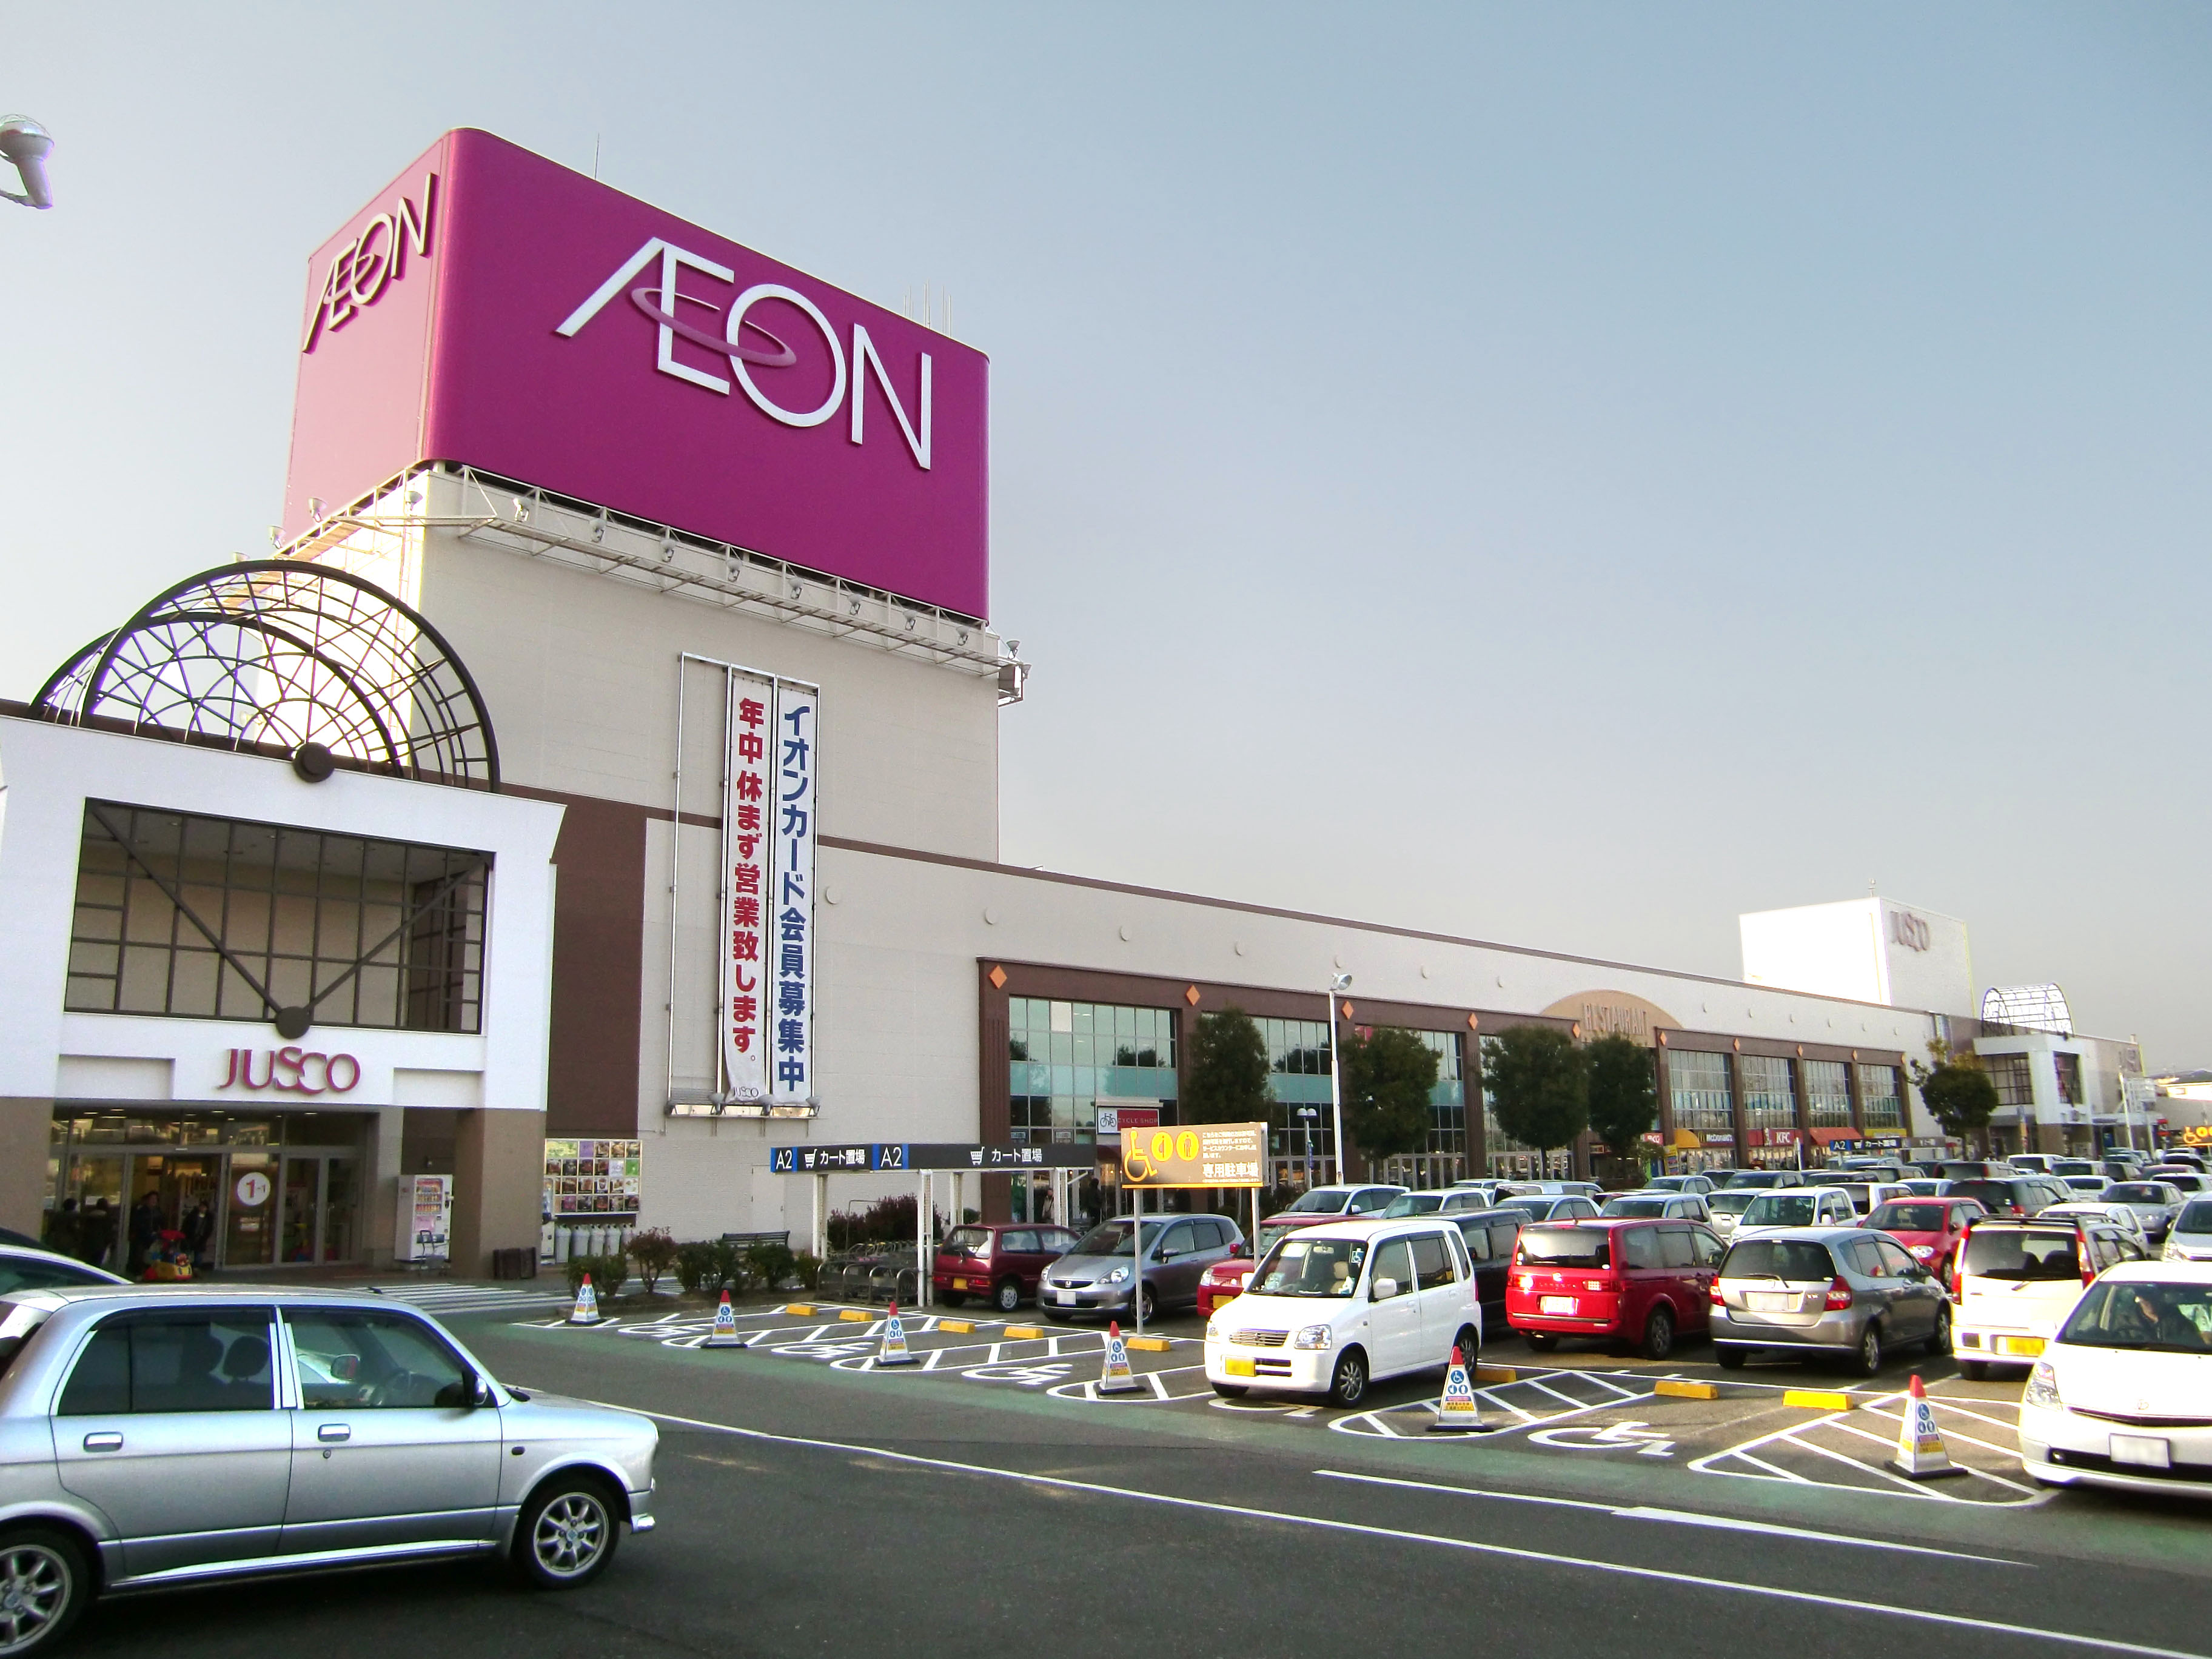 List of shopping malls in Malaysia